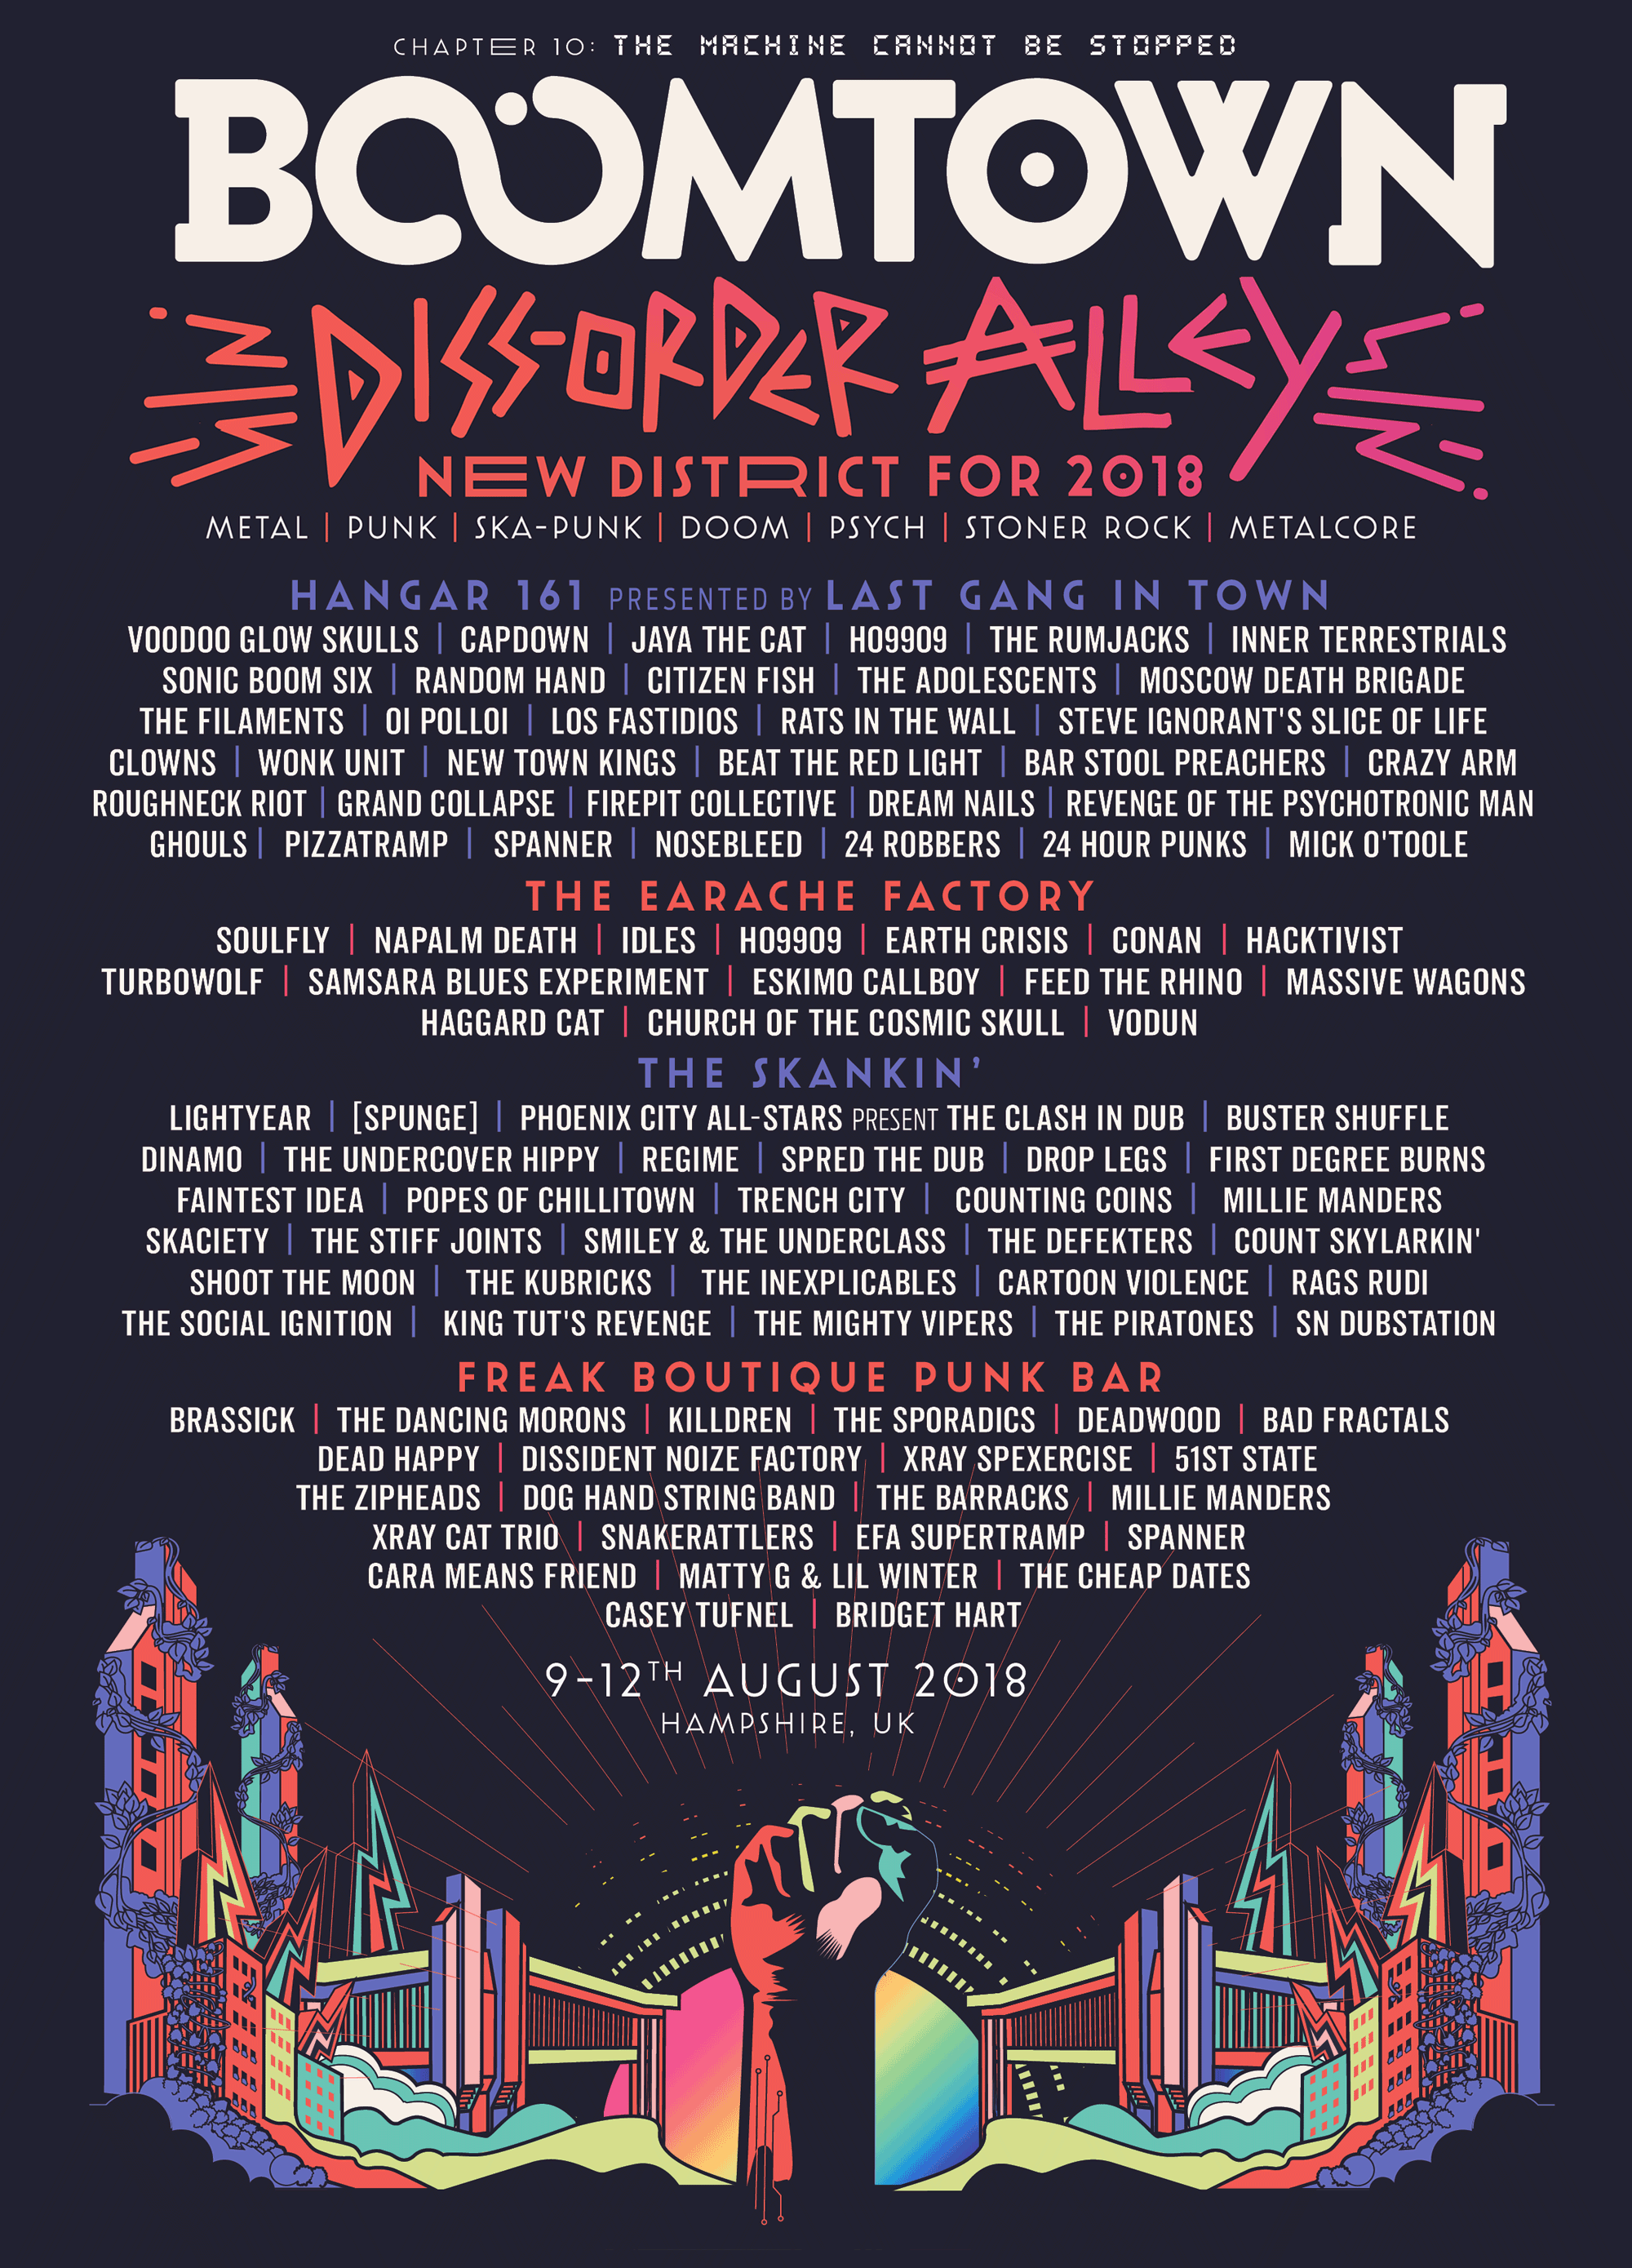 BoomTown Diss Order Alley line up